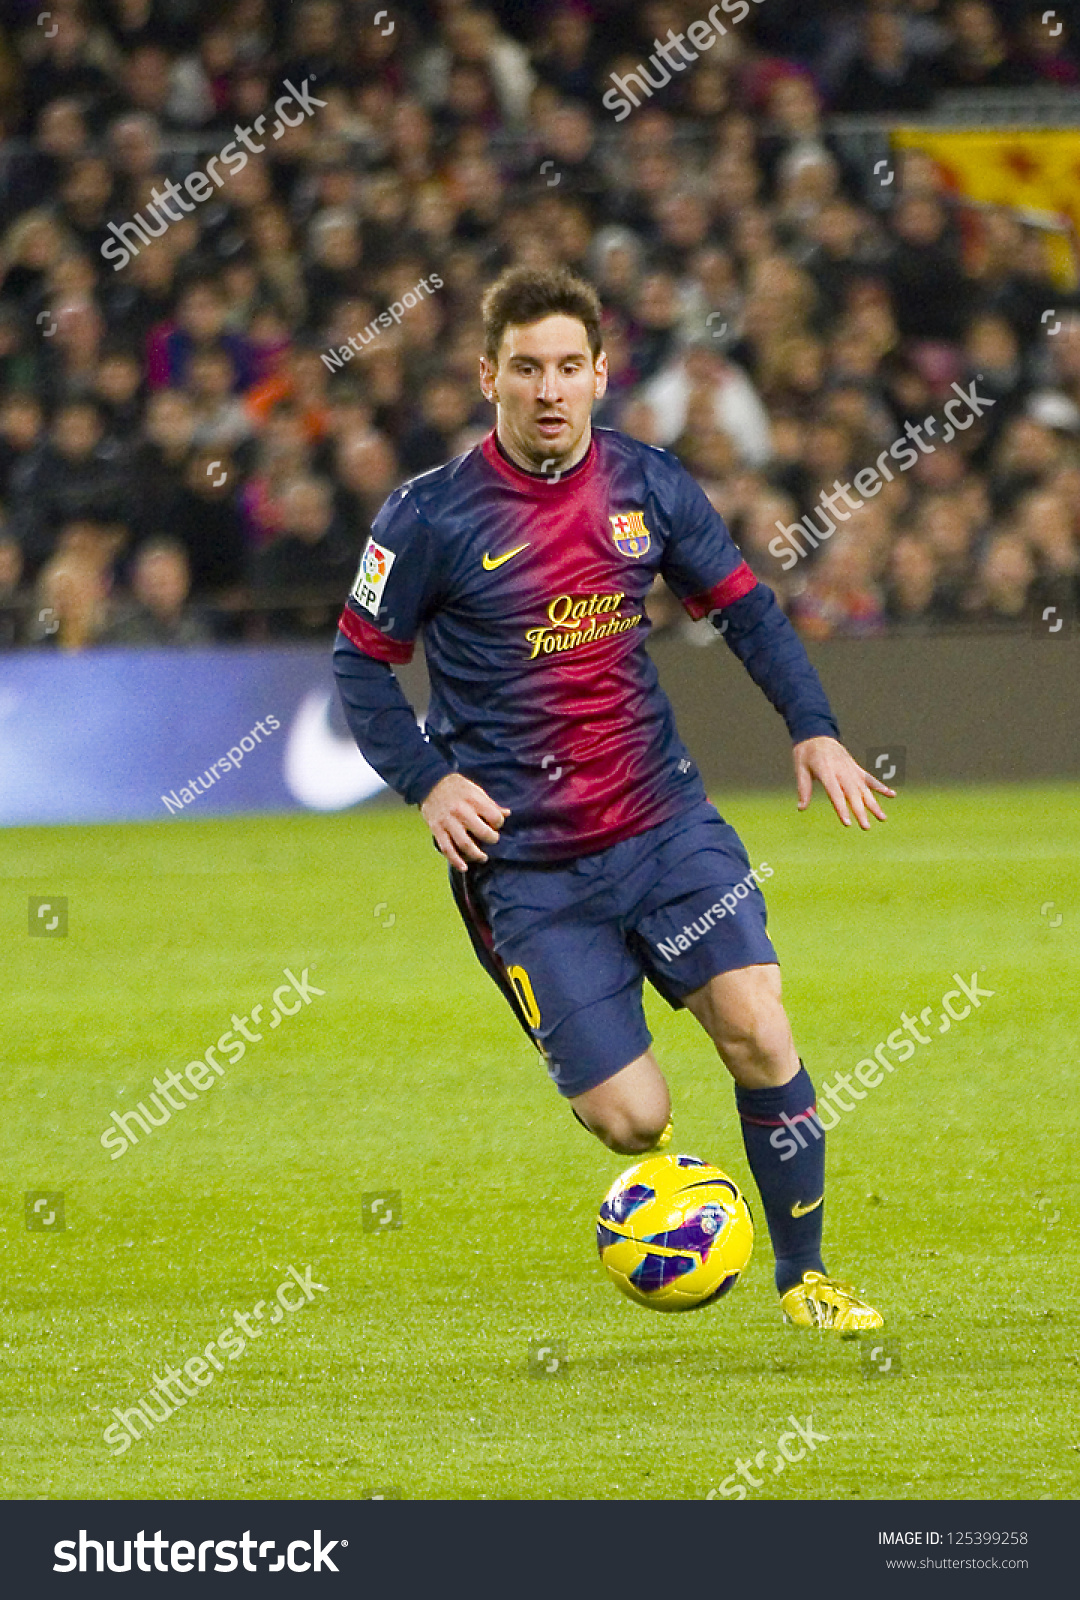 a13c8a751 stock-photo-barcelona-january-lionel-messi-of -fcb-in-action-during-the-spanish-league-match-between-fc-125399258.jpg